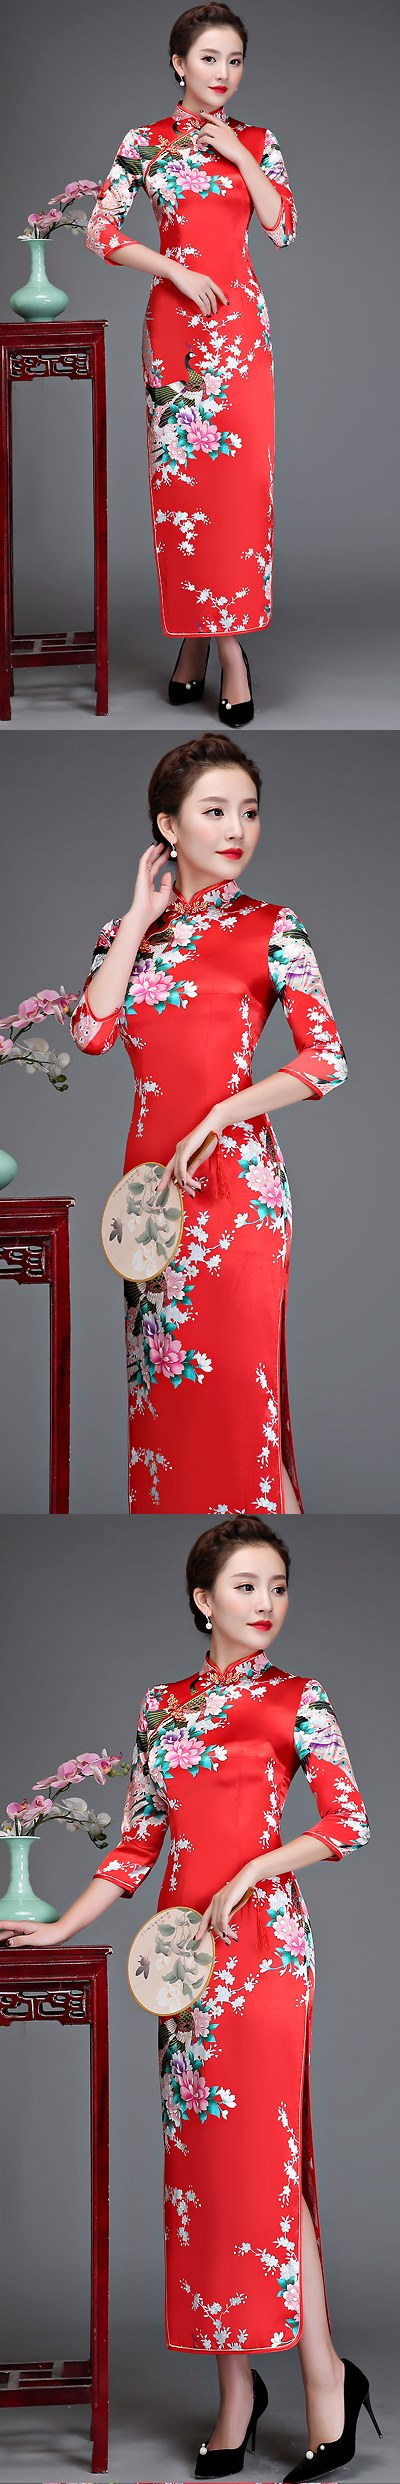 3/4-sleeve Long-length Brocade Cheongsam (RM)